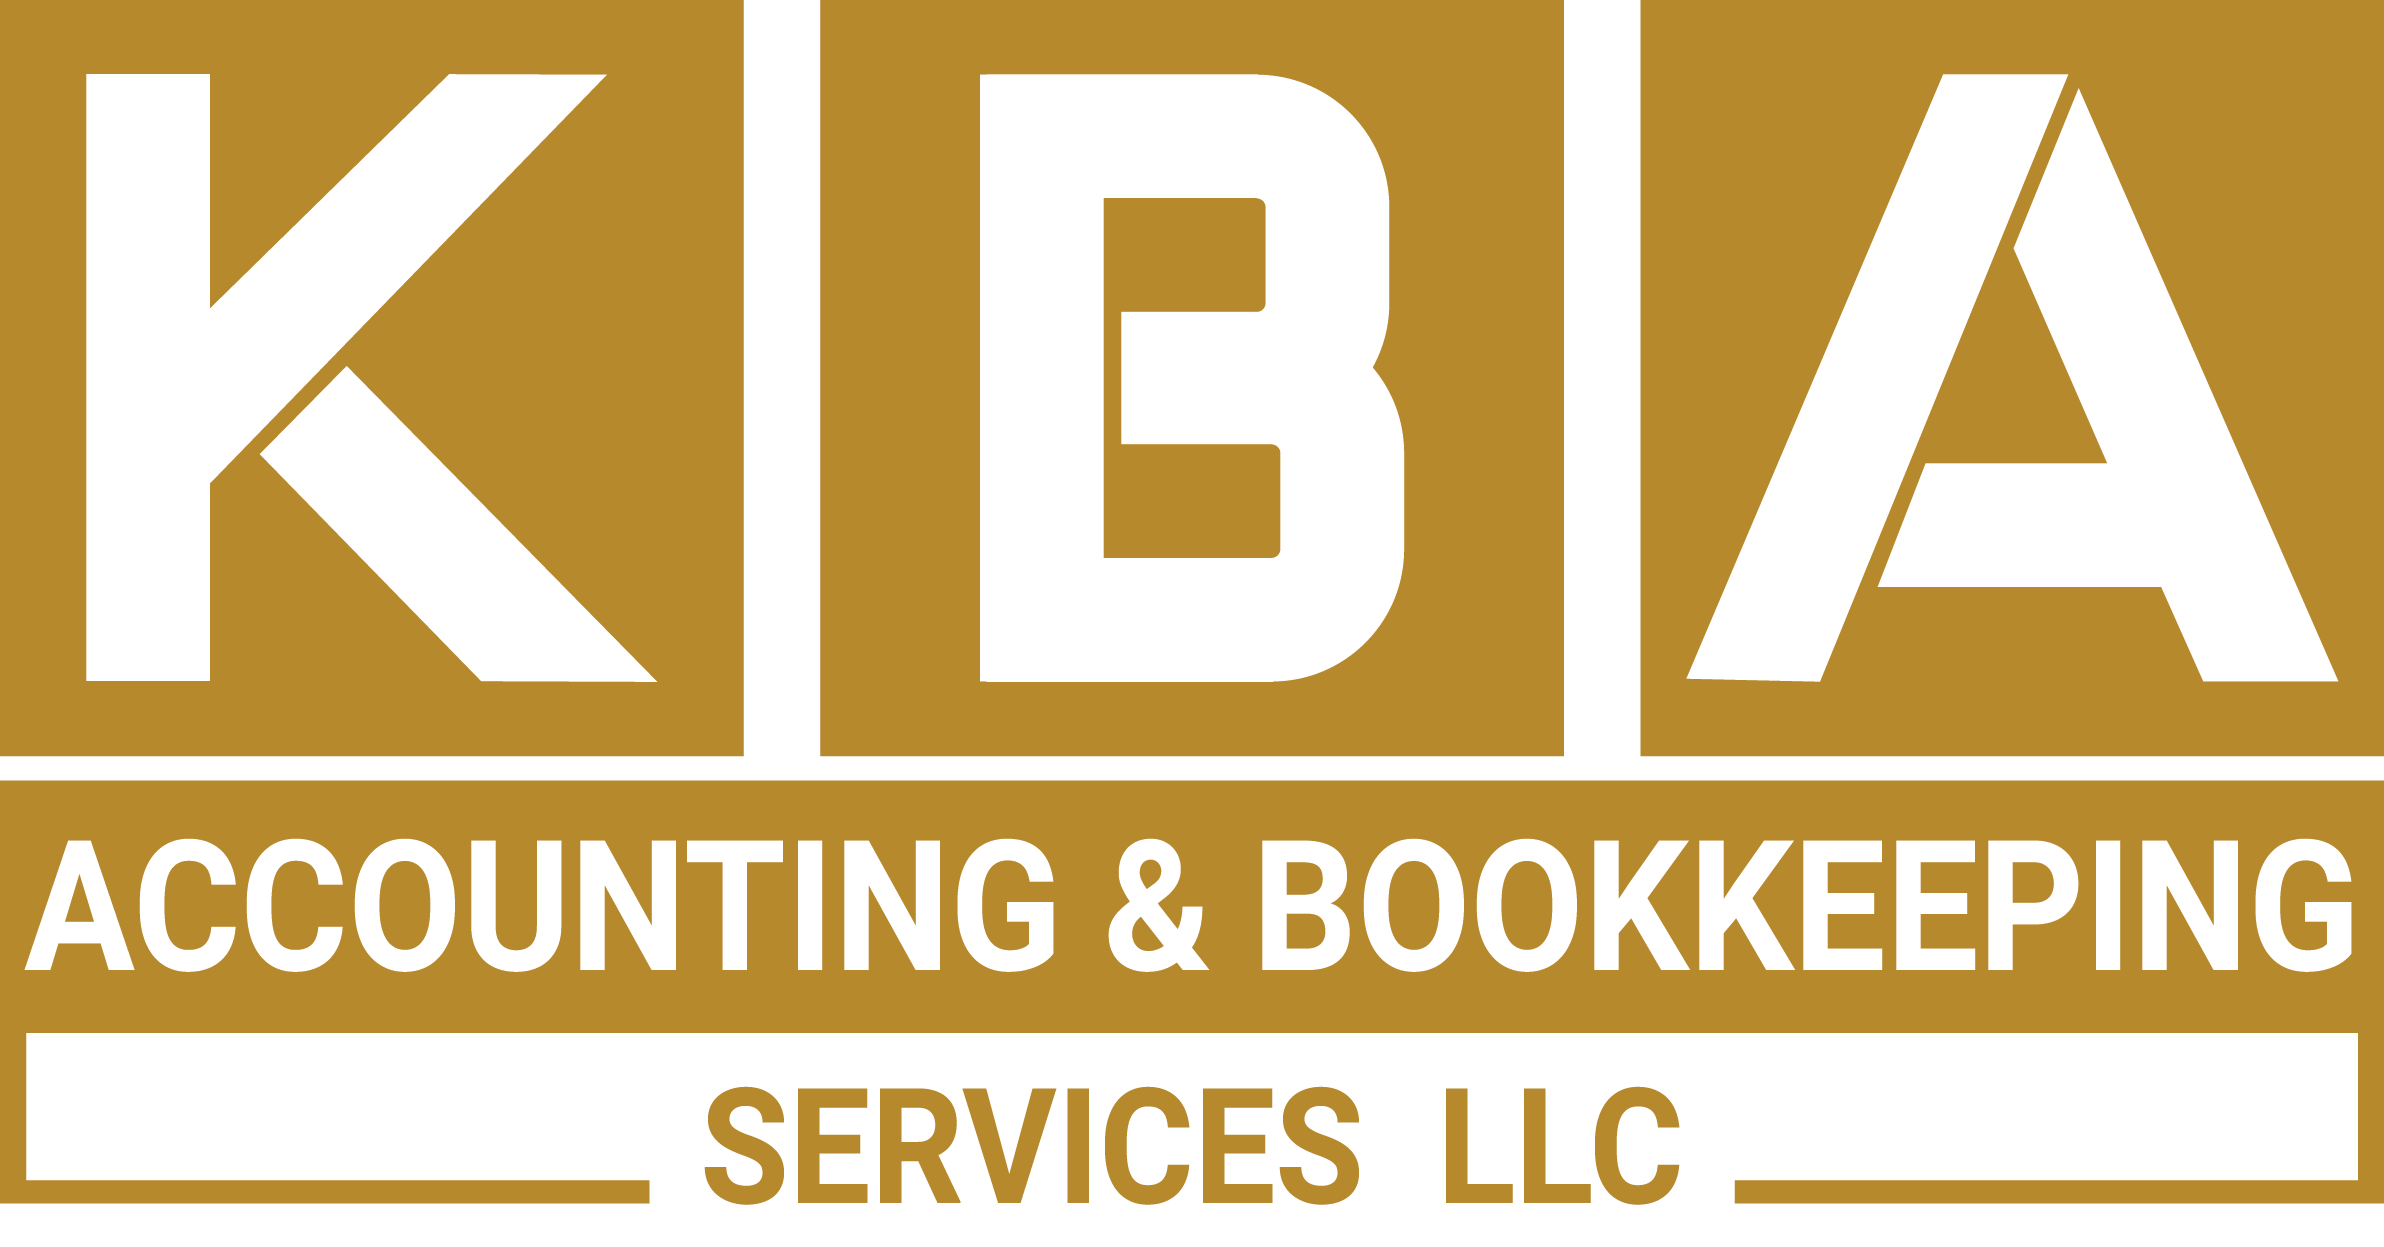 KBA Accounting and Bookkeeping Services LLC Logo